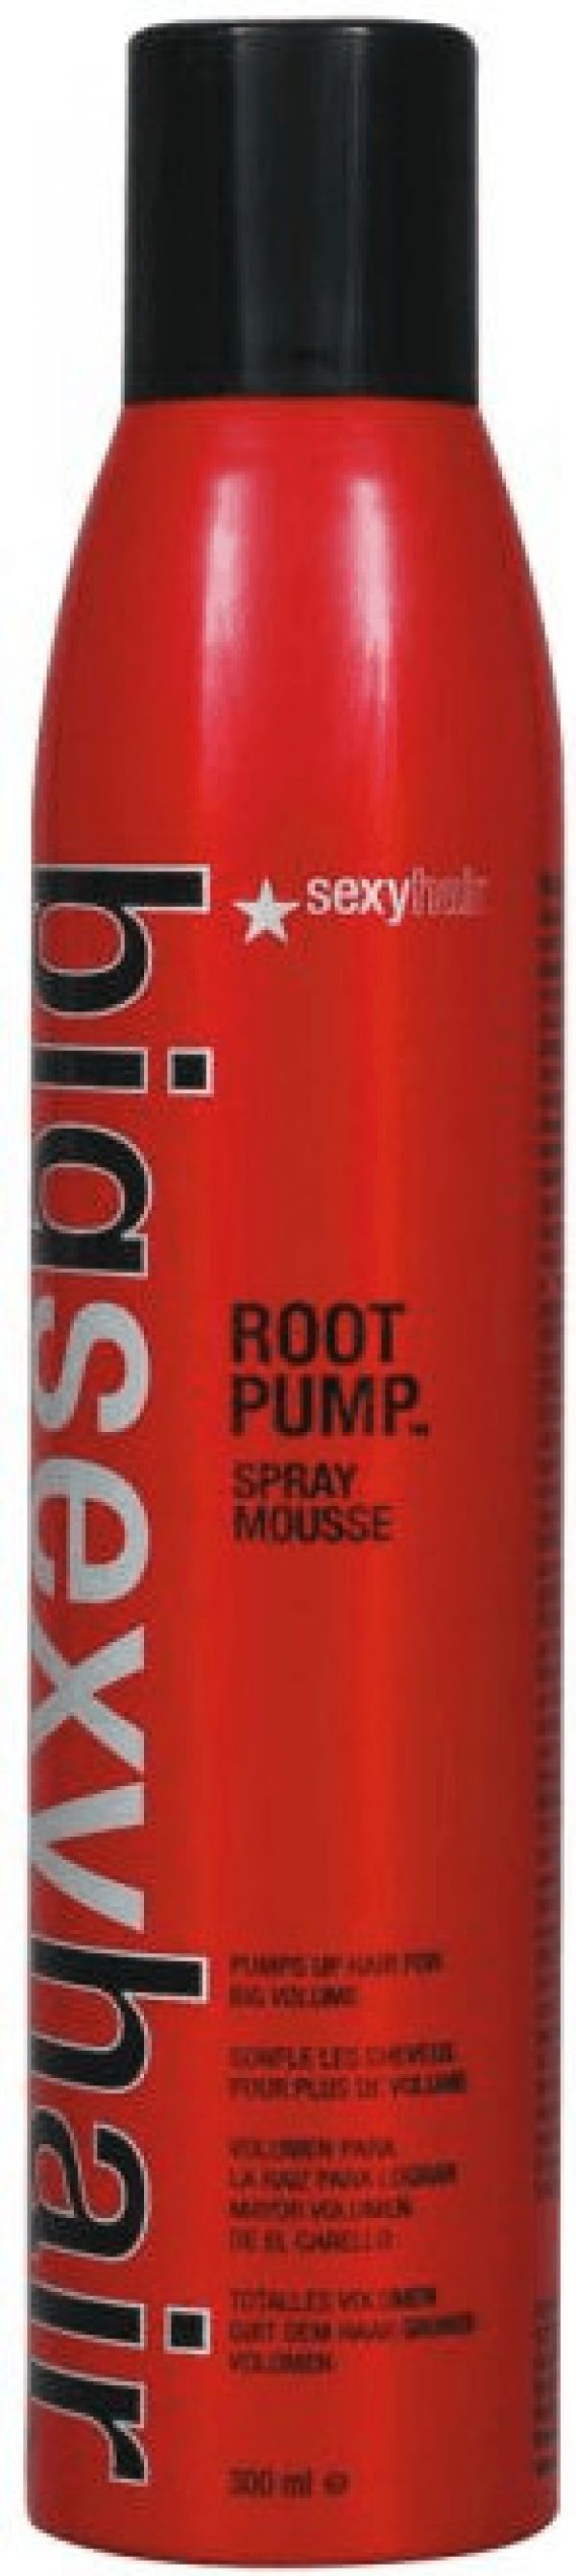 Big Root Pump Spray Mouse